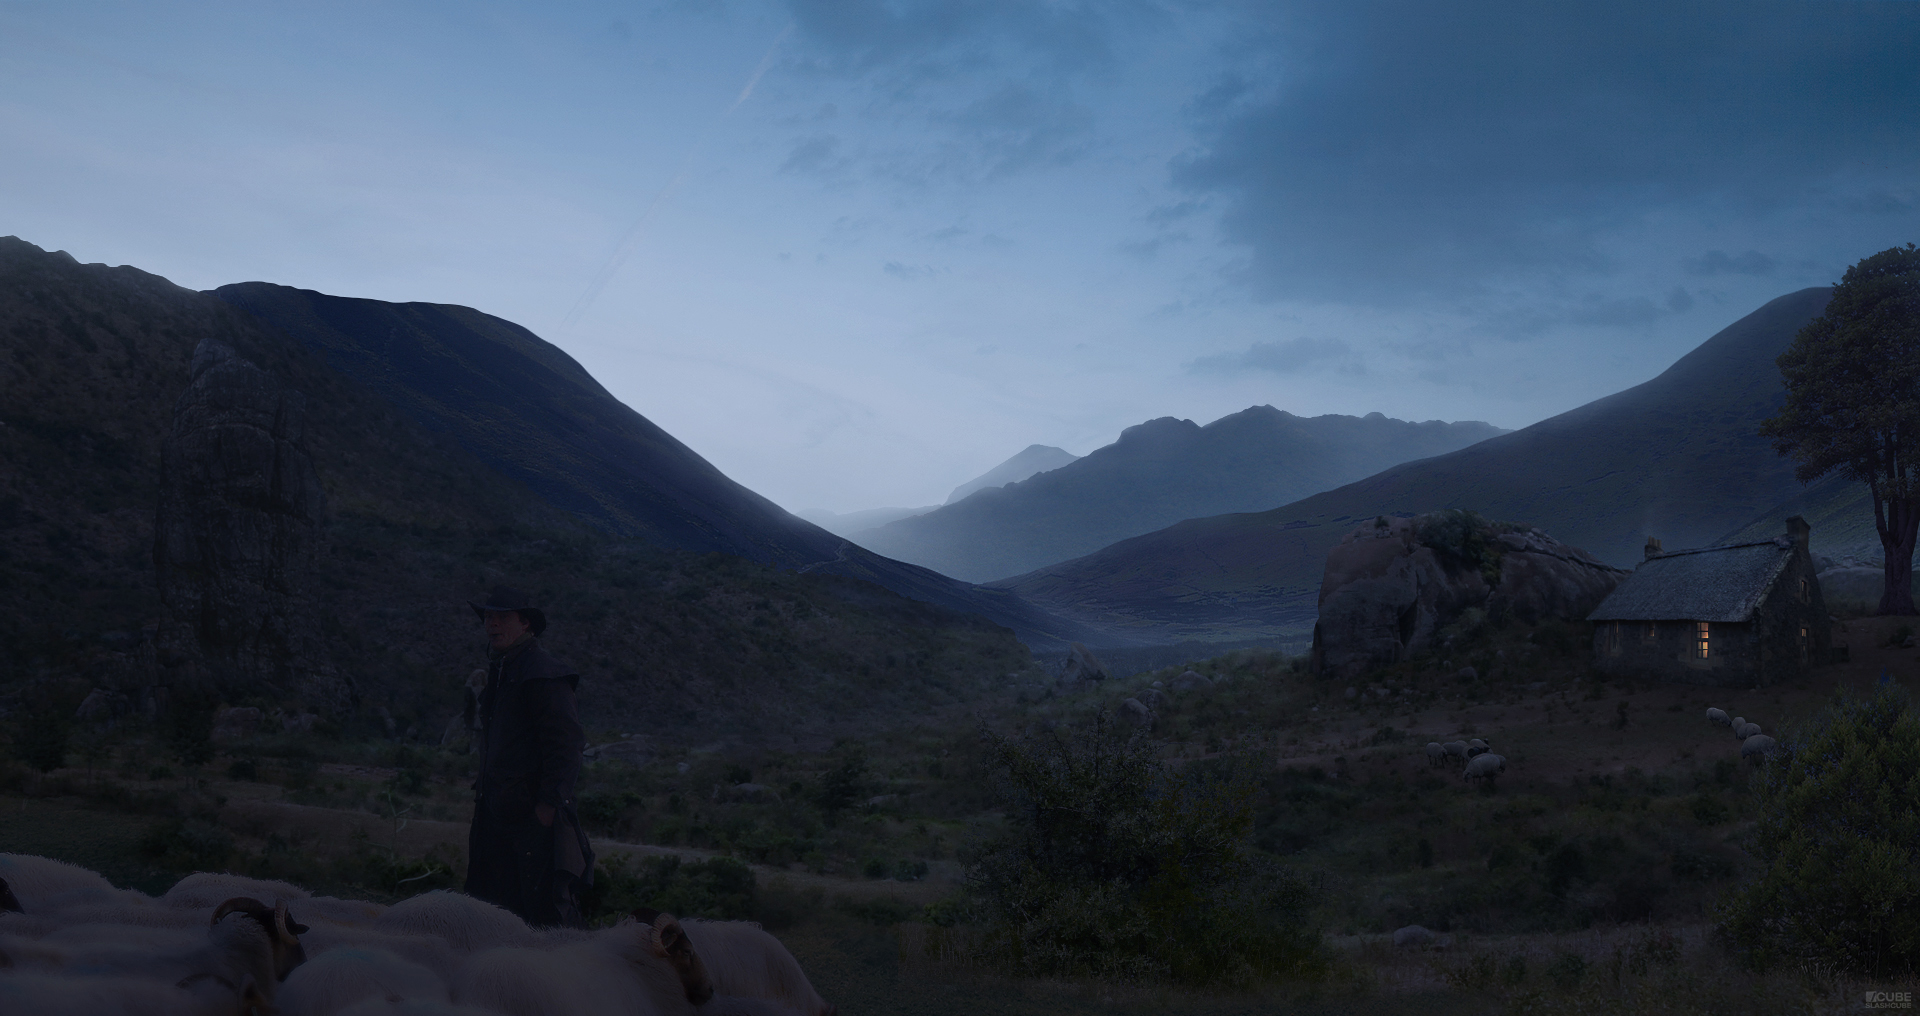 Moody Evening Valley